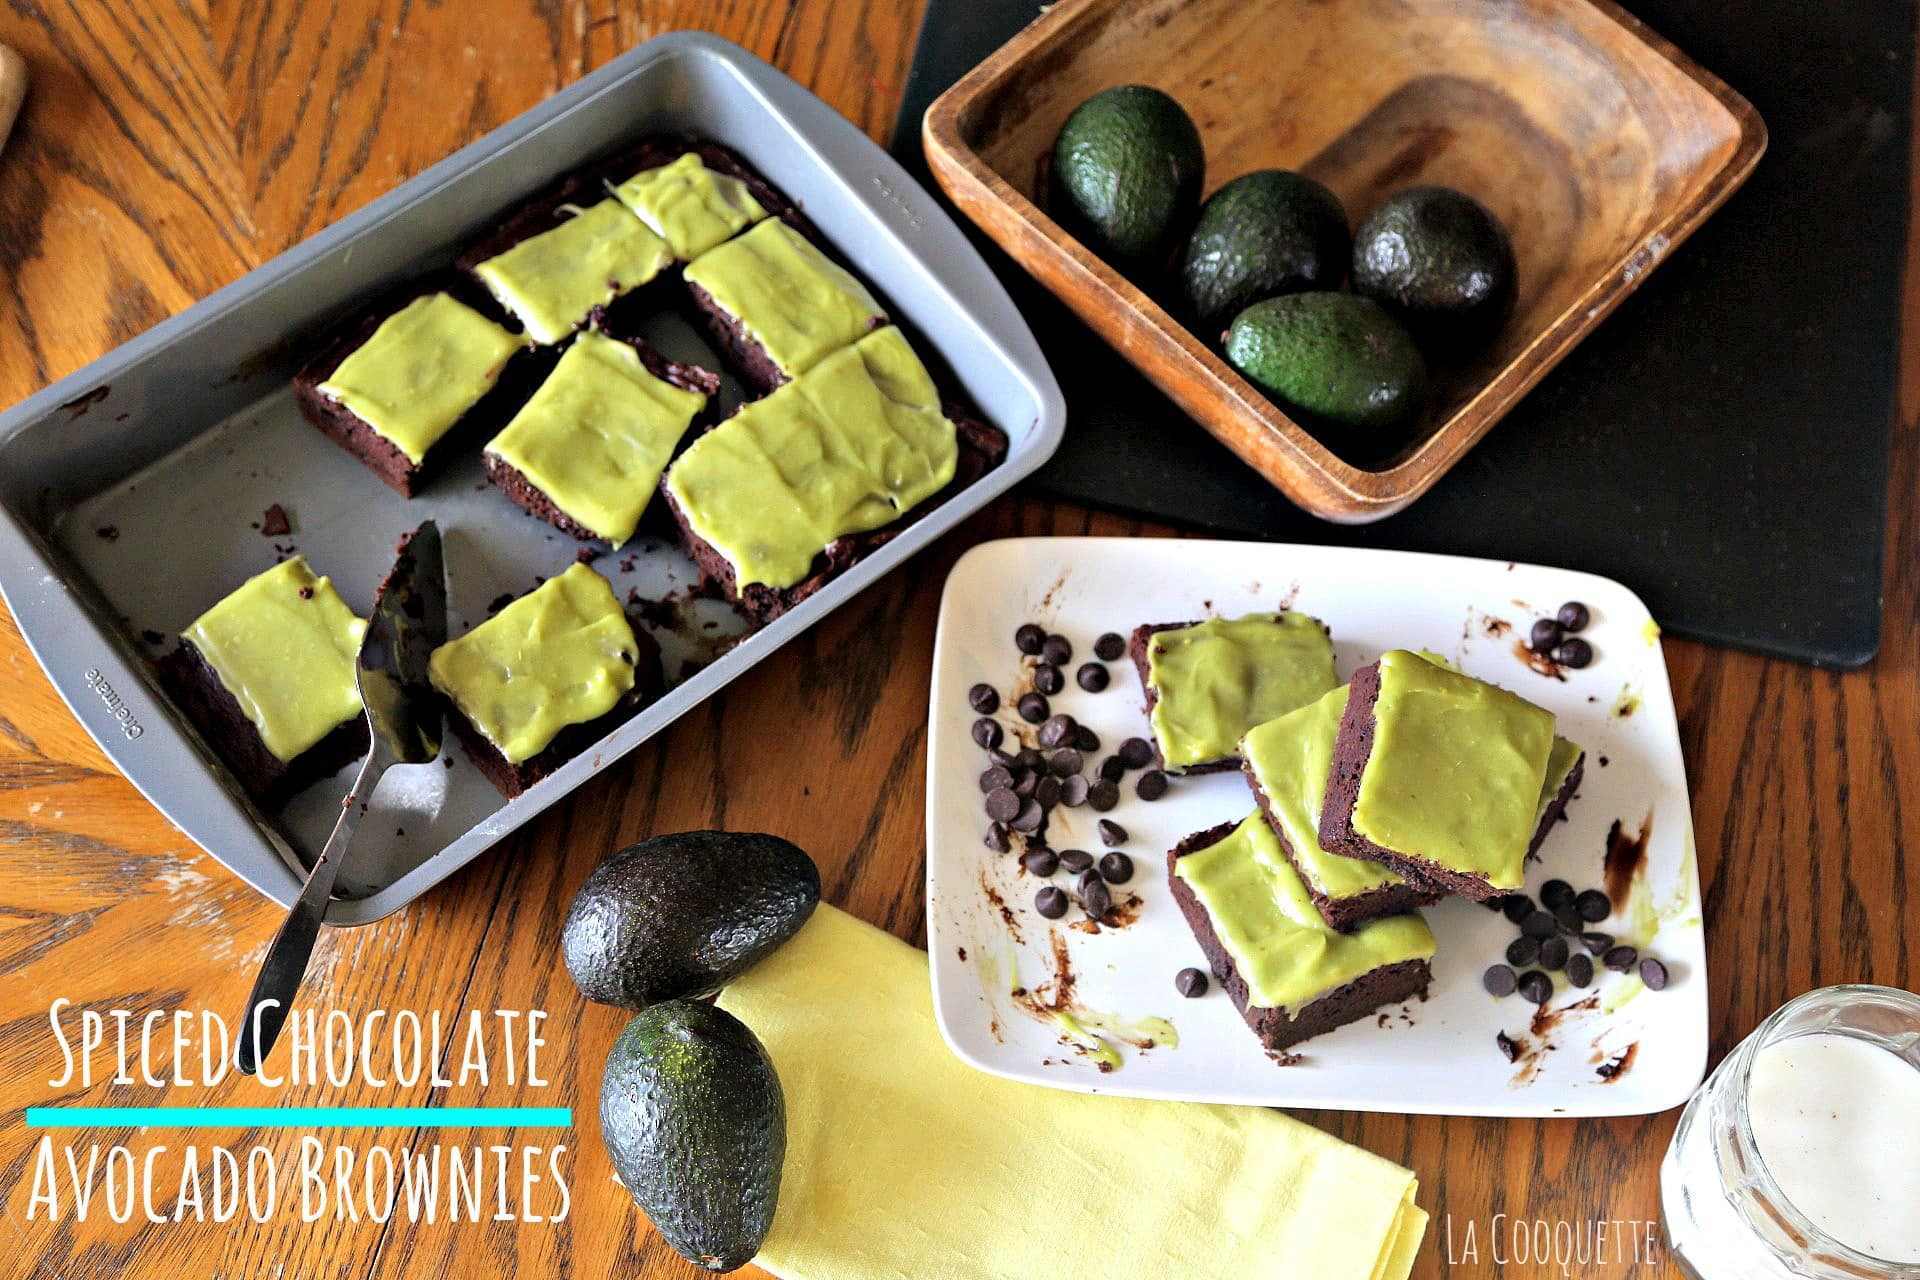 Spiced Chocolate Avocado Brownies